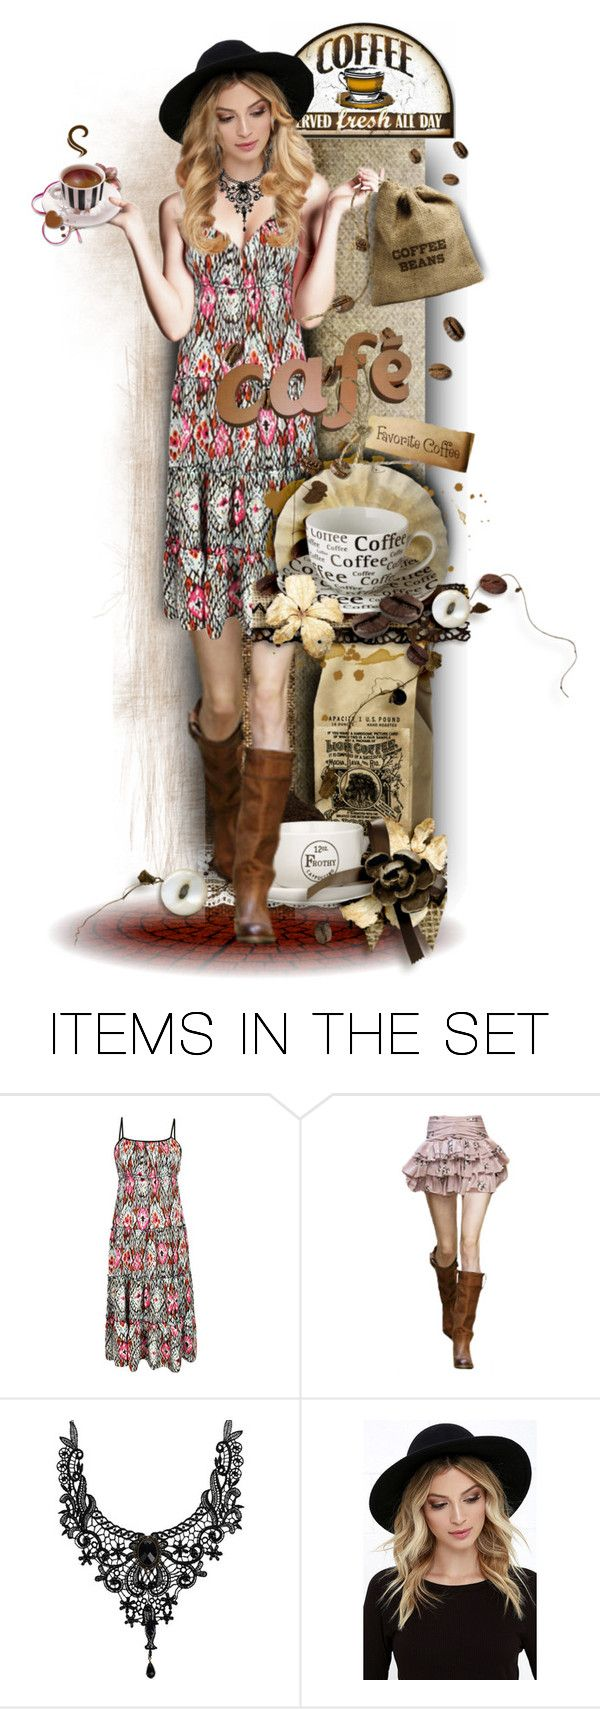 """Boho Cafe"" by tracireuer ❤ liked on Polyvore featuring art"